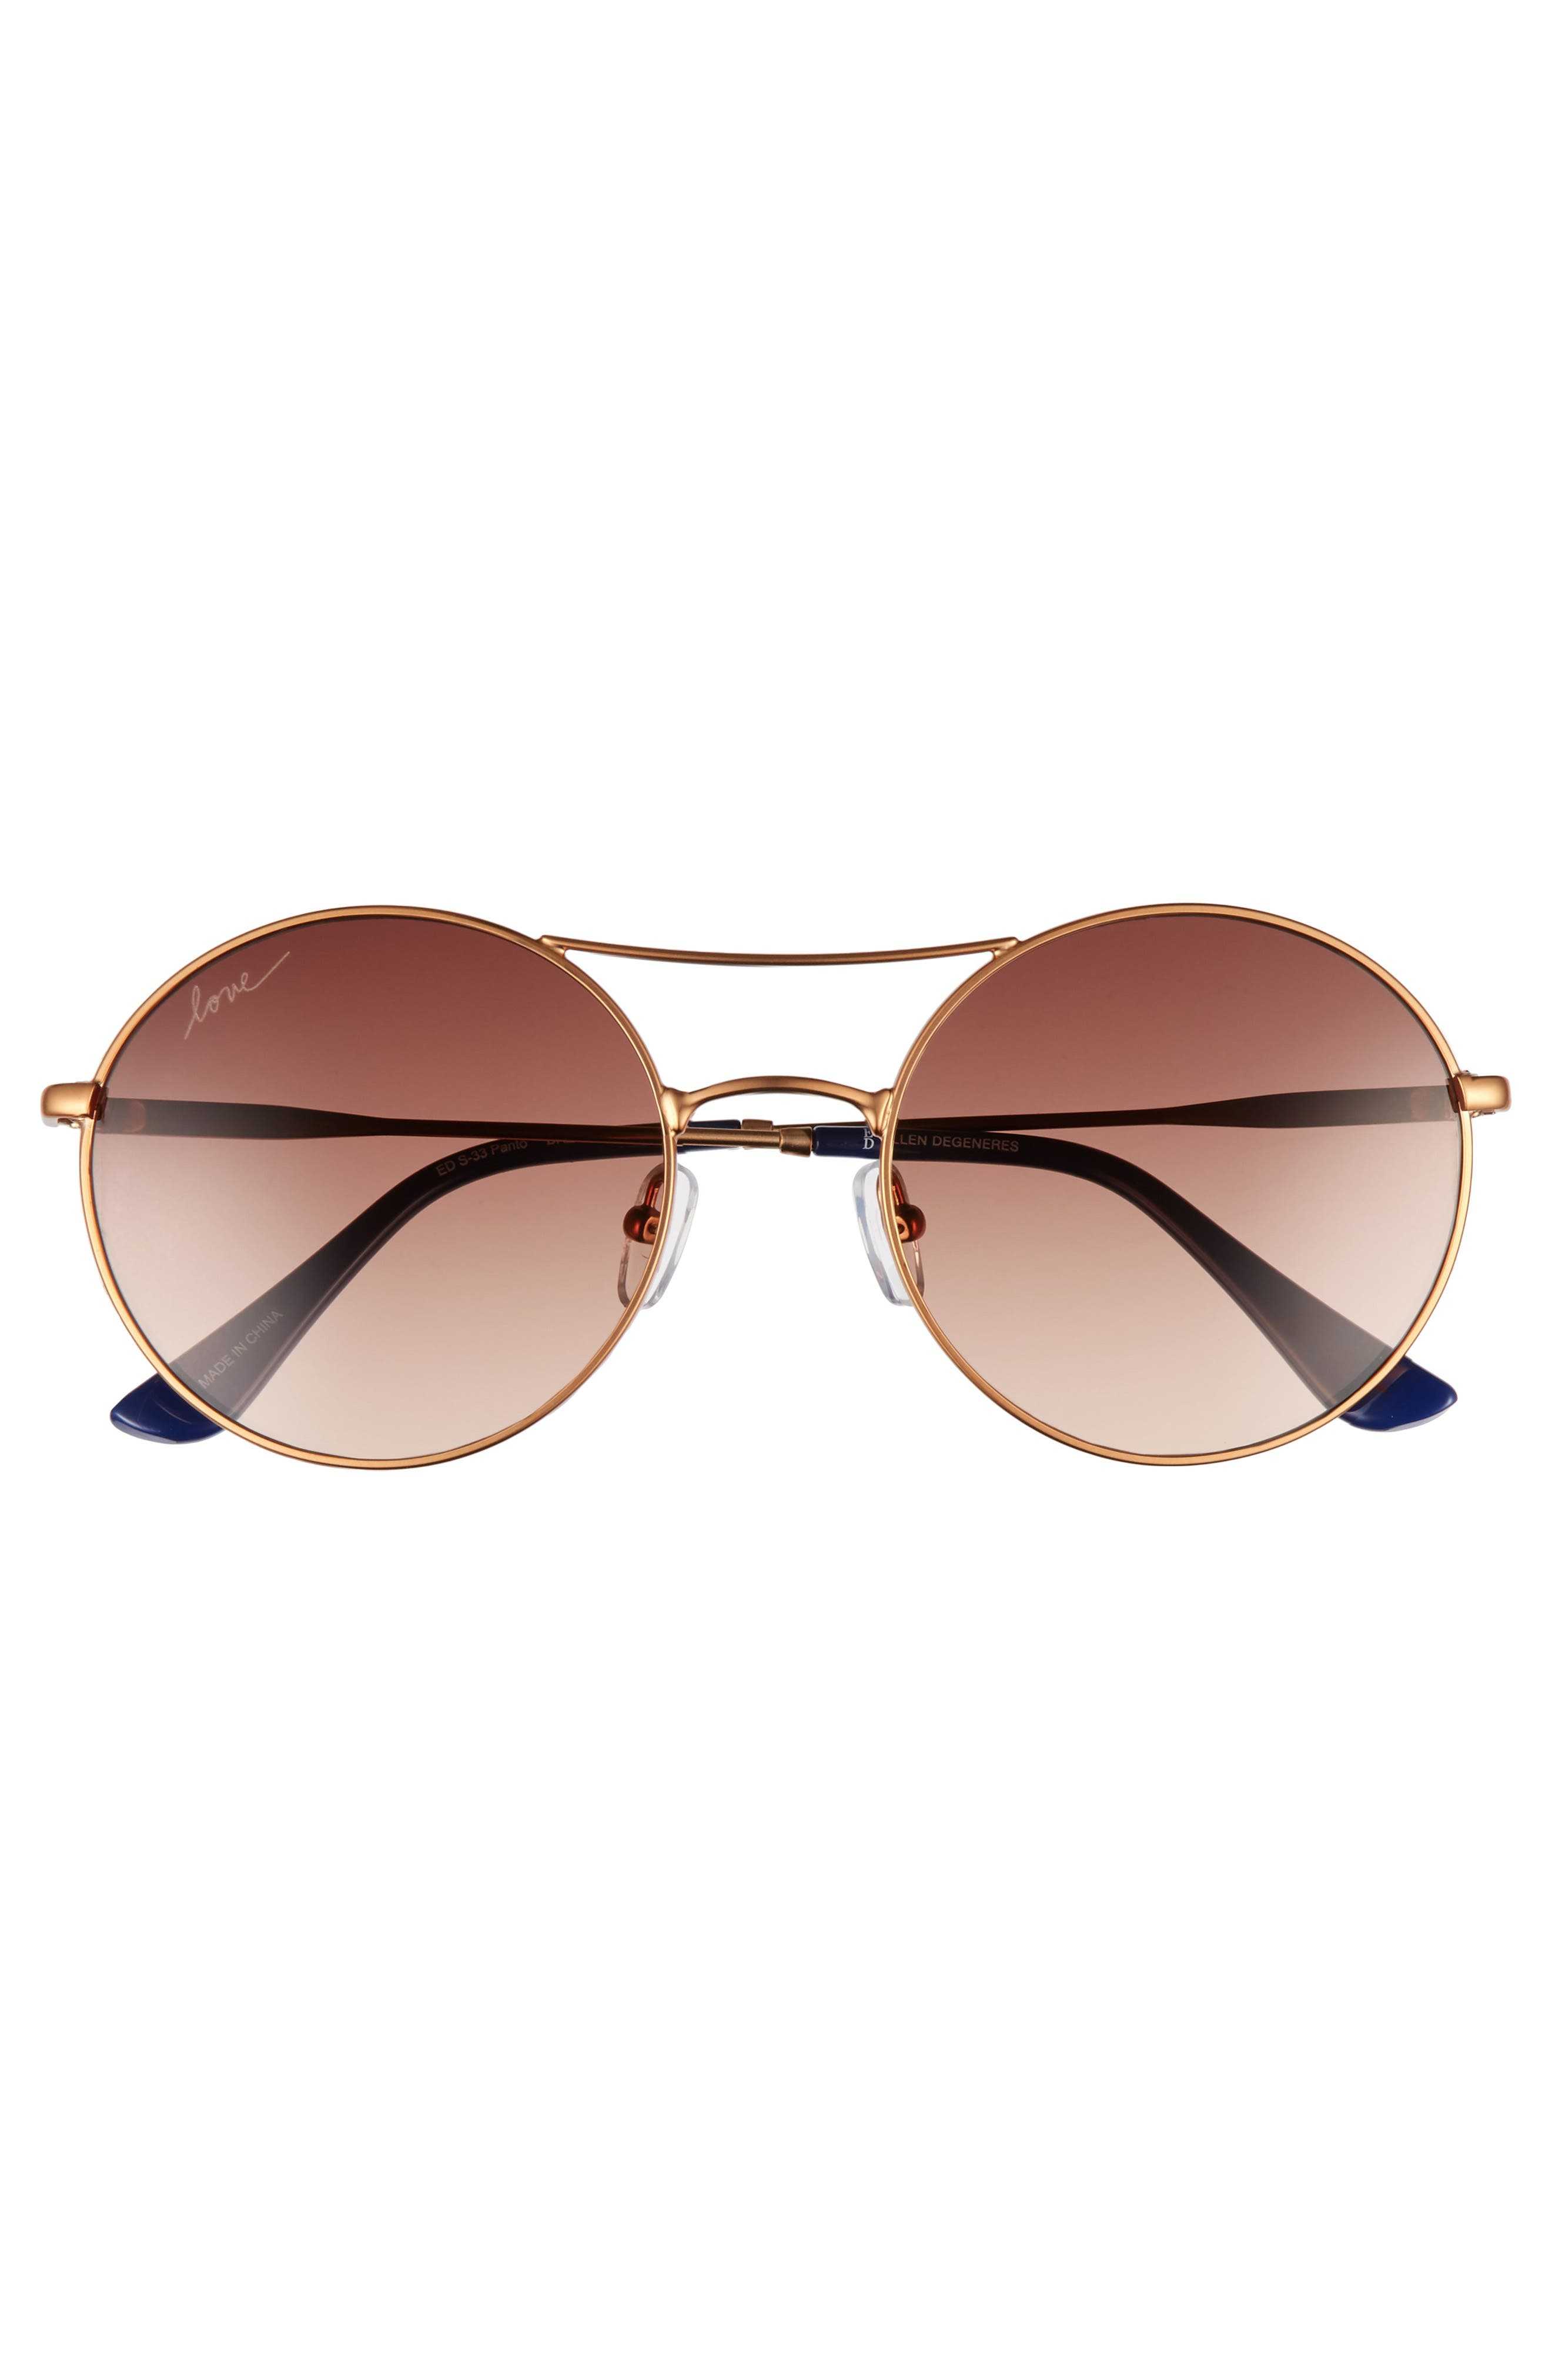 55mm Round Sunglasses,                             Alternate thumbnail 2, color,                             Bronze